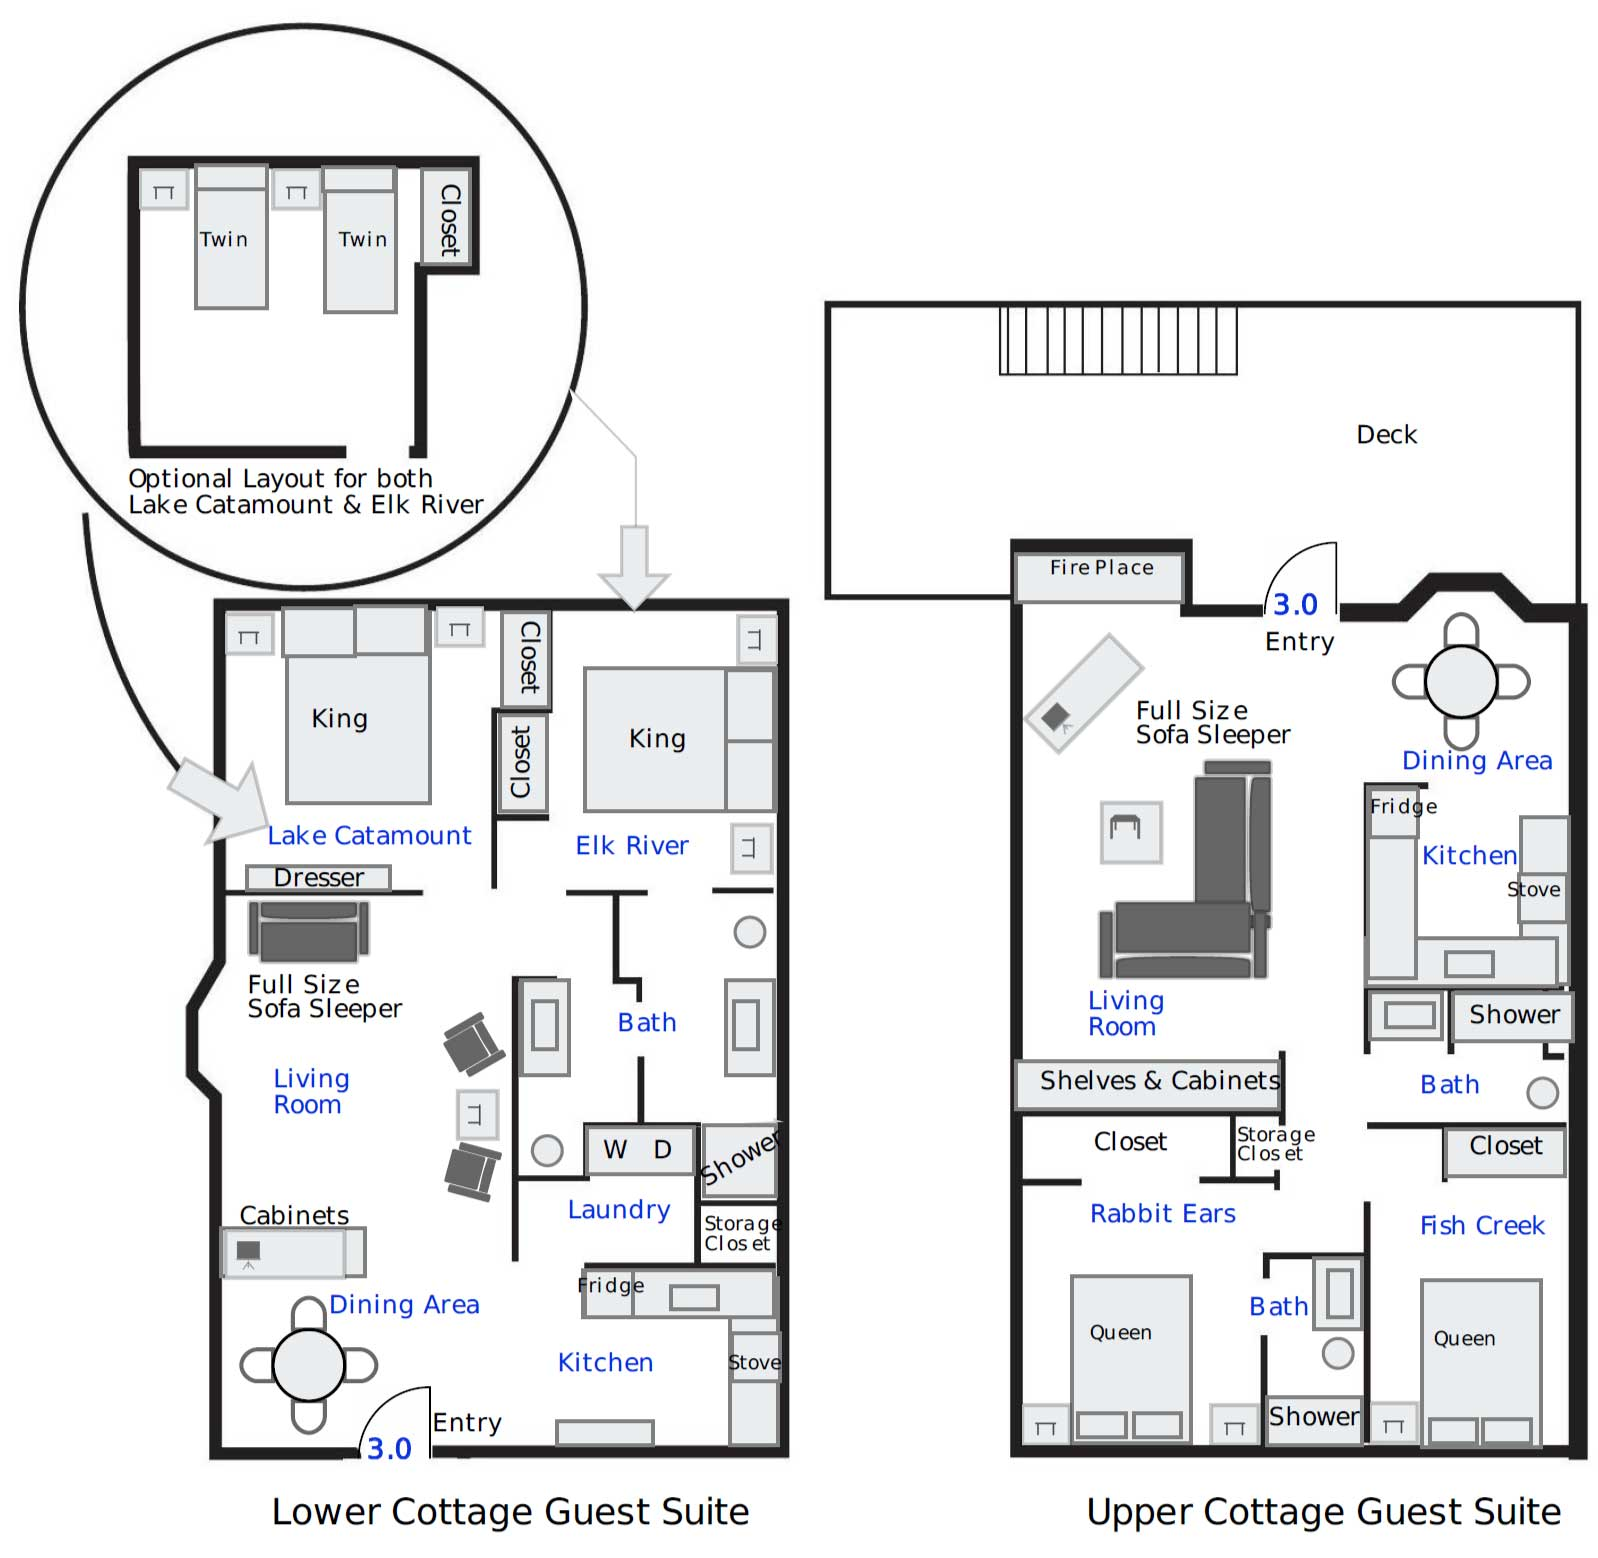 Cottage Floorplan - Cottages